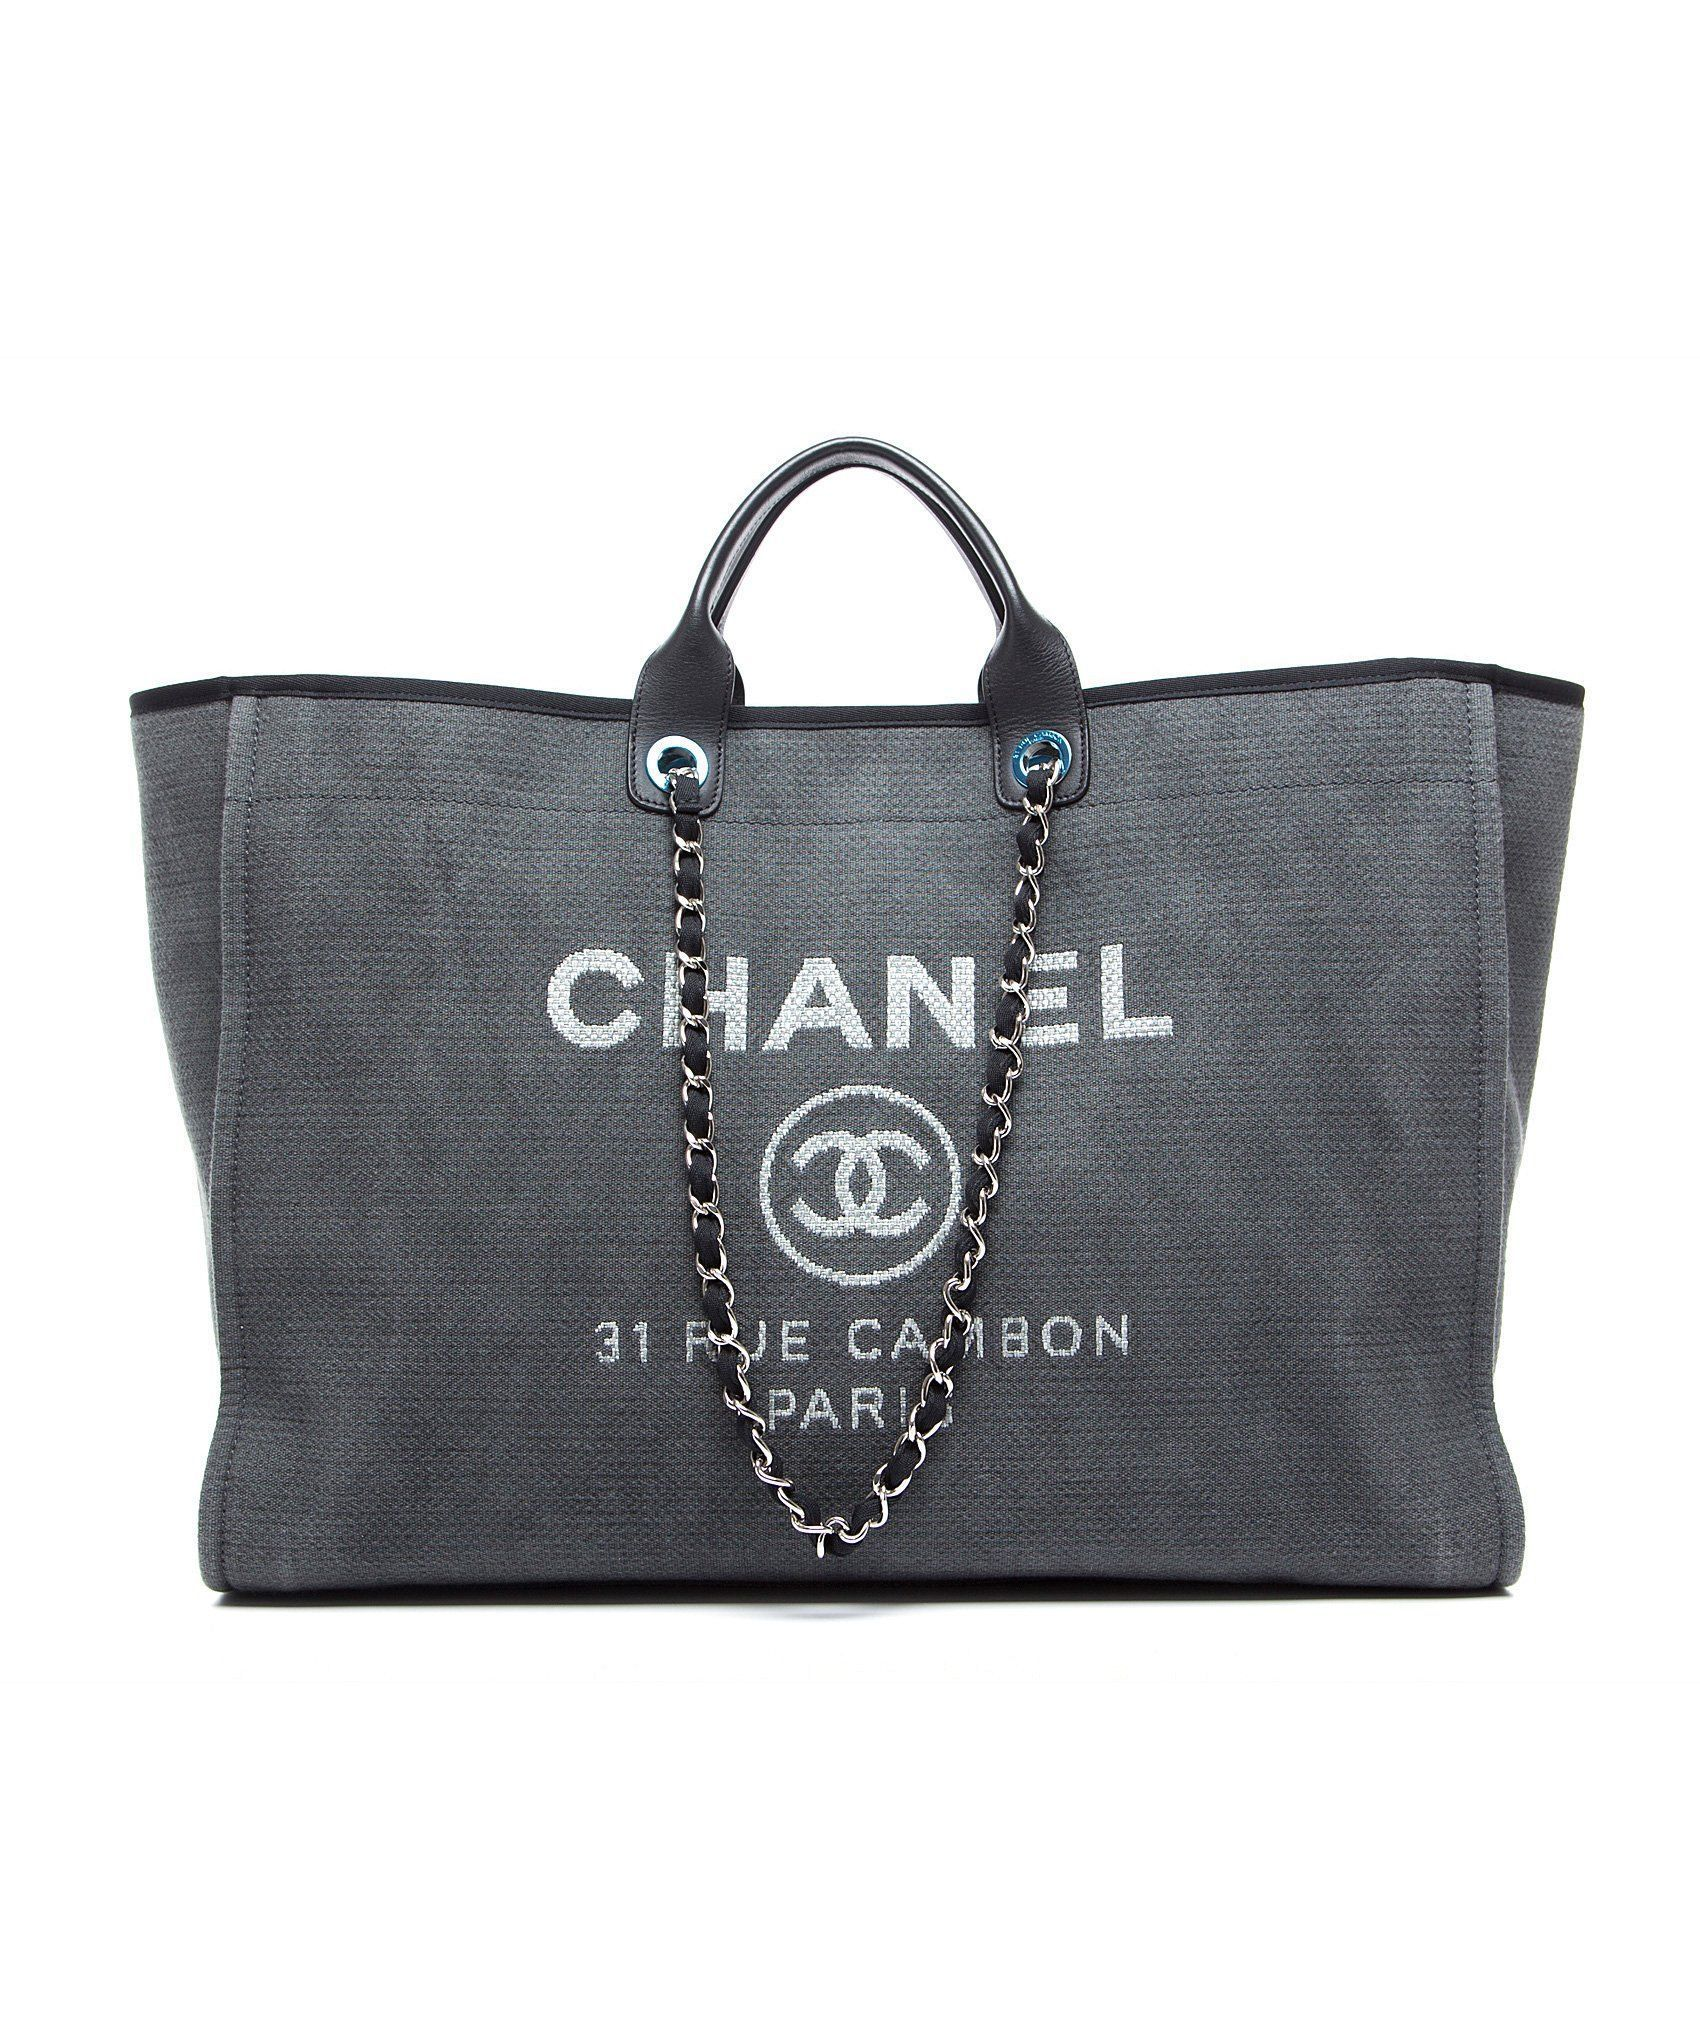 Chanel Pre Owned Chanel Grey Canvas Deauville Xl Tote Bag